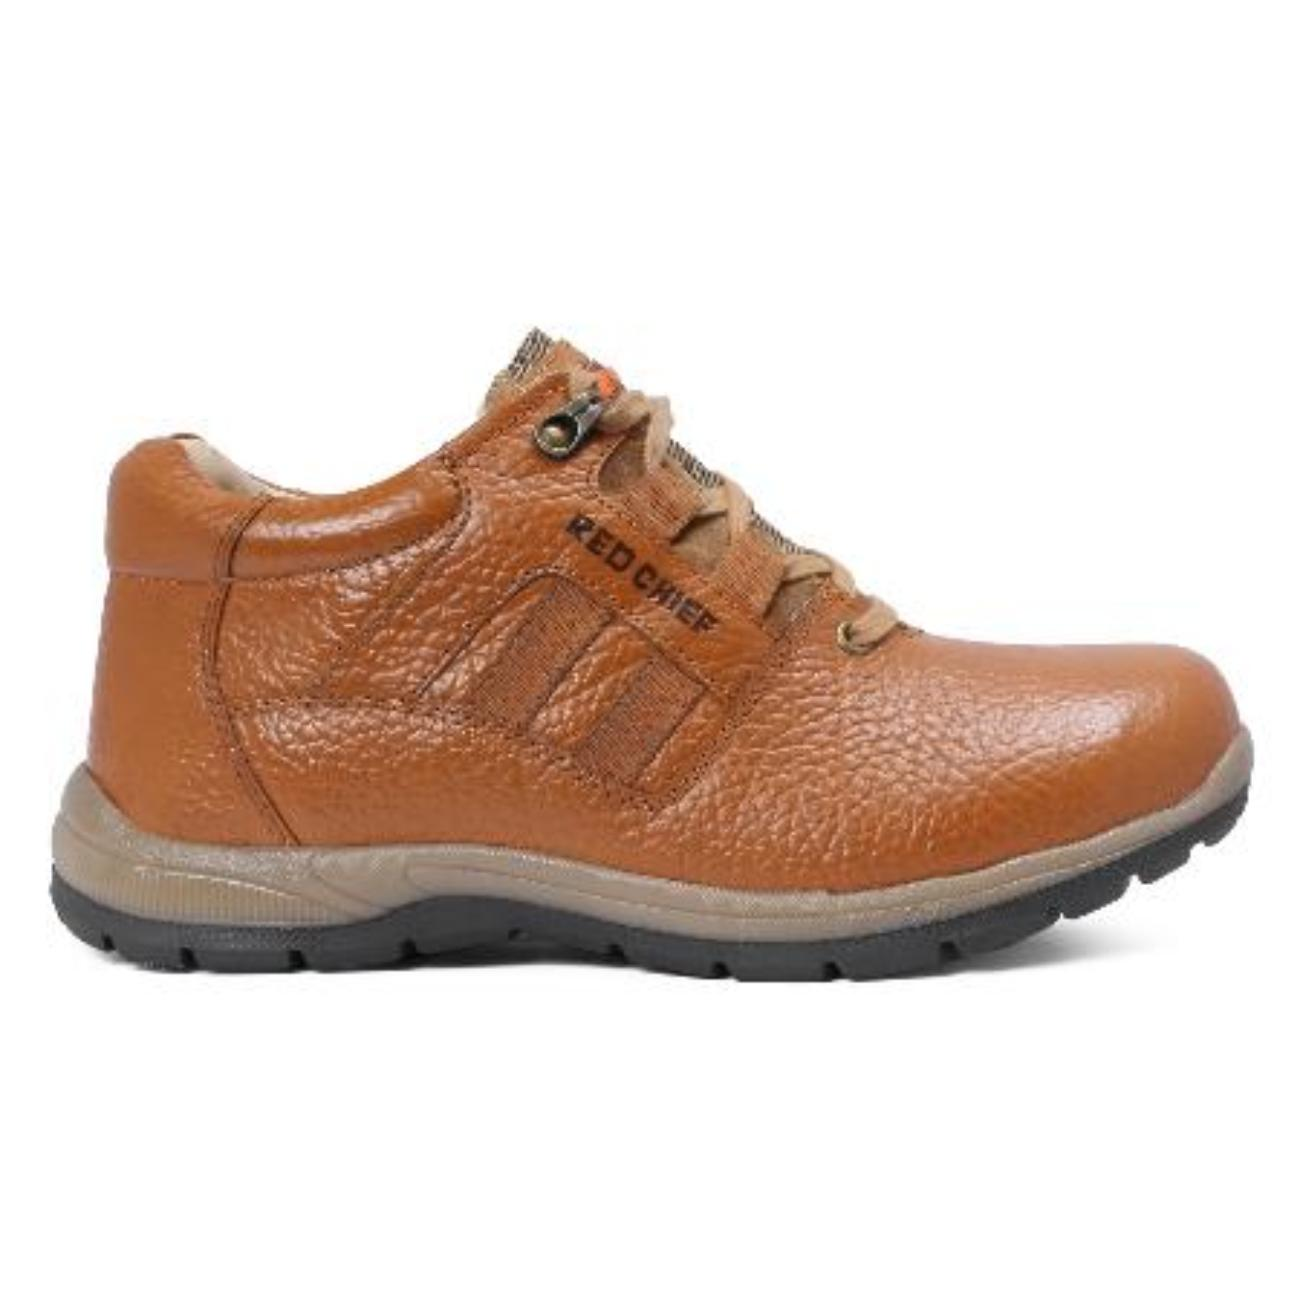 buy low ankle elephant tan casual leather shoes side view_1